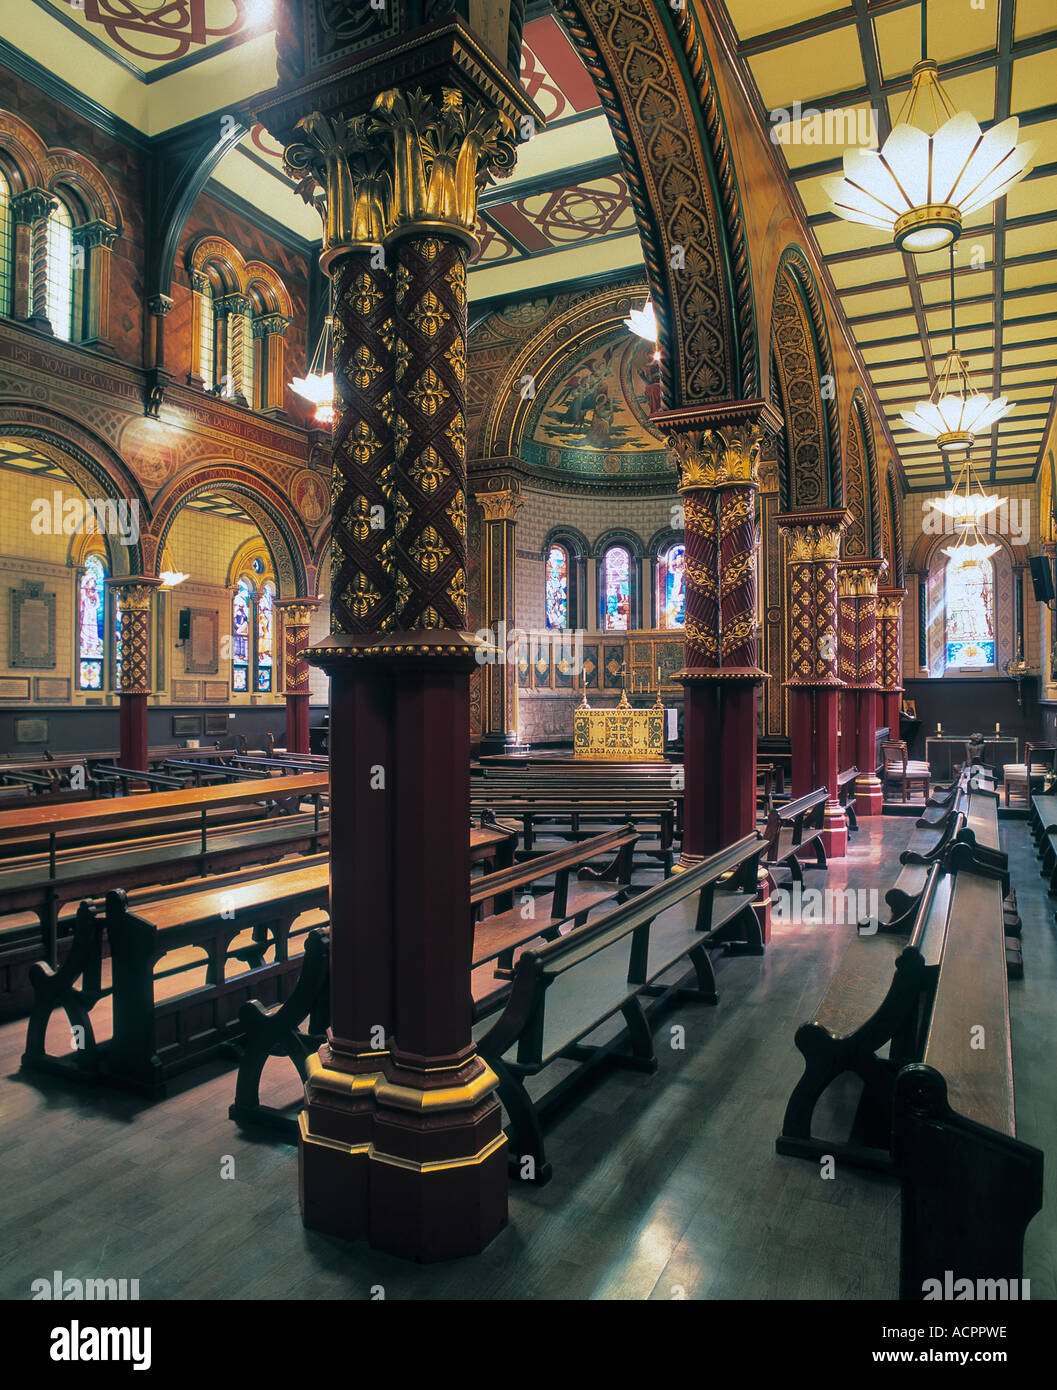 Byzantine interior of the Strand Chapel at Kings College London by George Gilbert Scott. Stock Photo